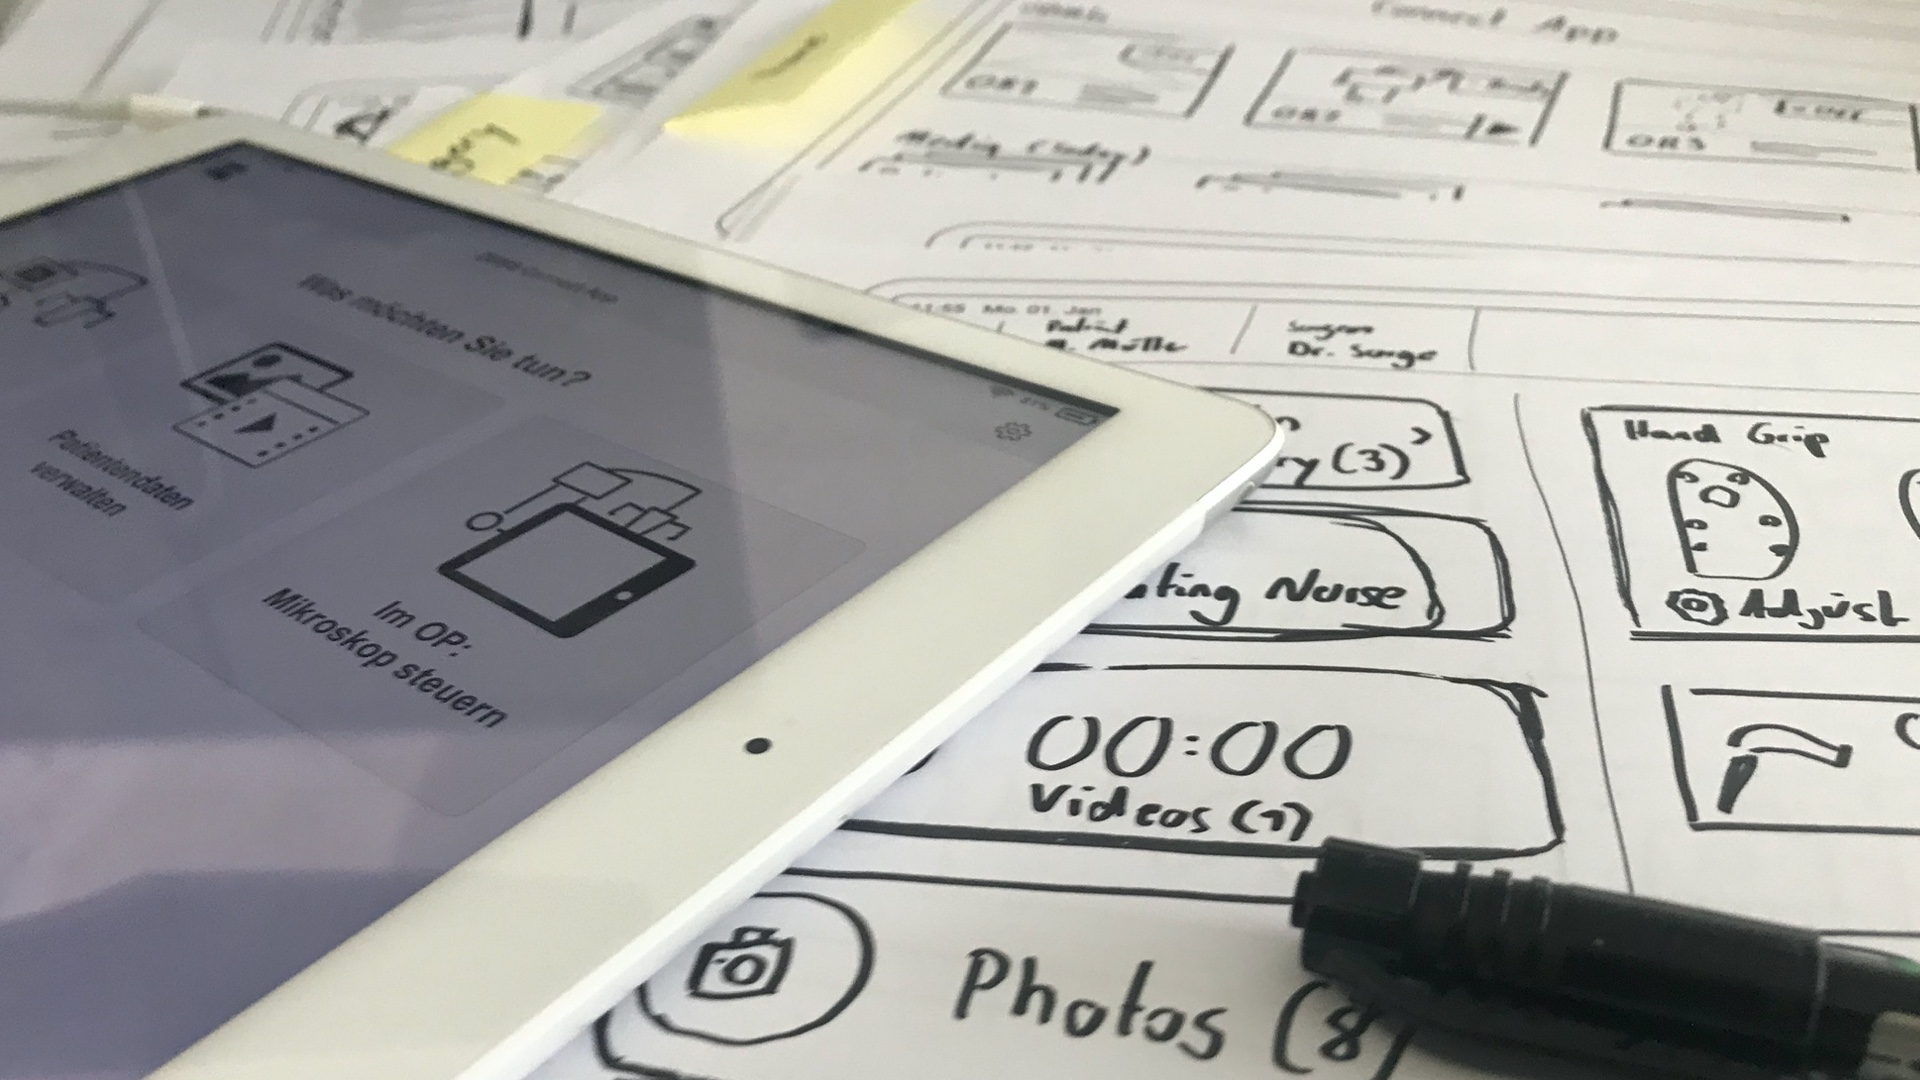 Sketching, wireframing and prototyping for medical iPad app